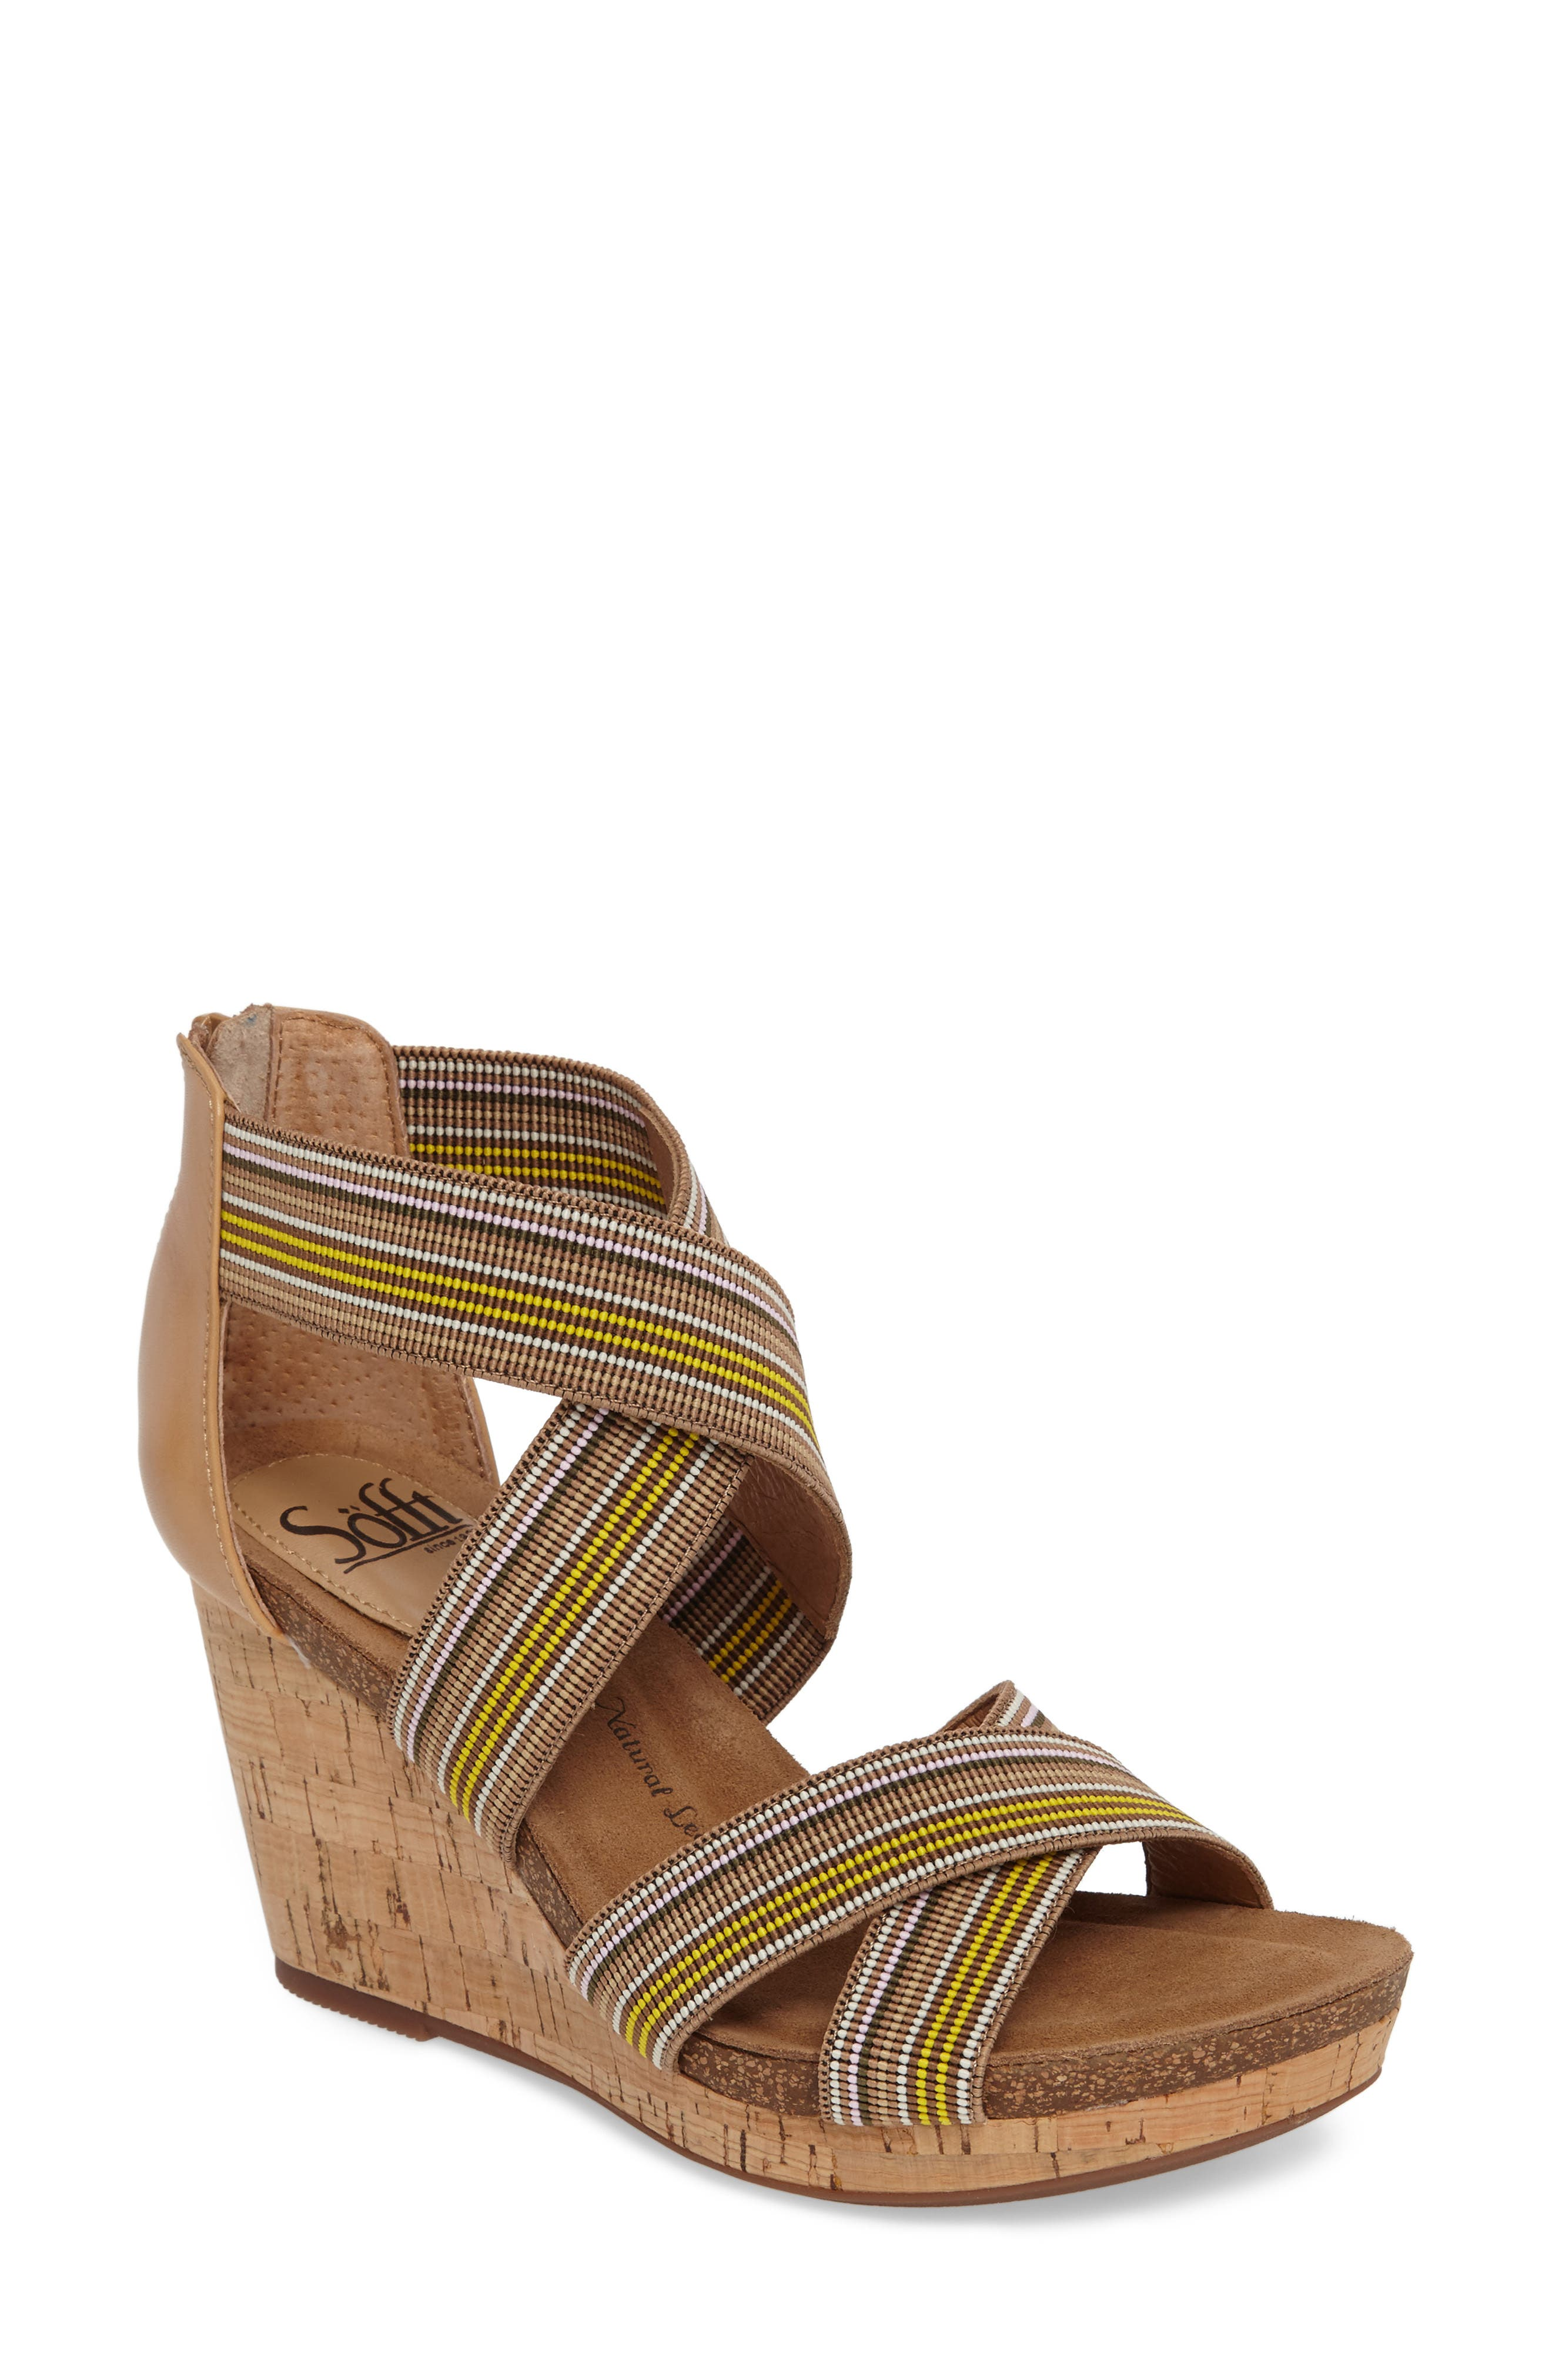 Cary Cross Strap Wedge Sandal,                         Main,                         color,